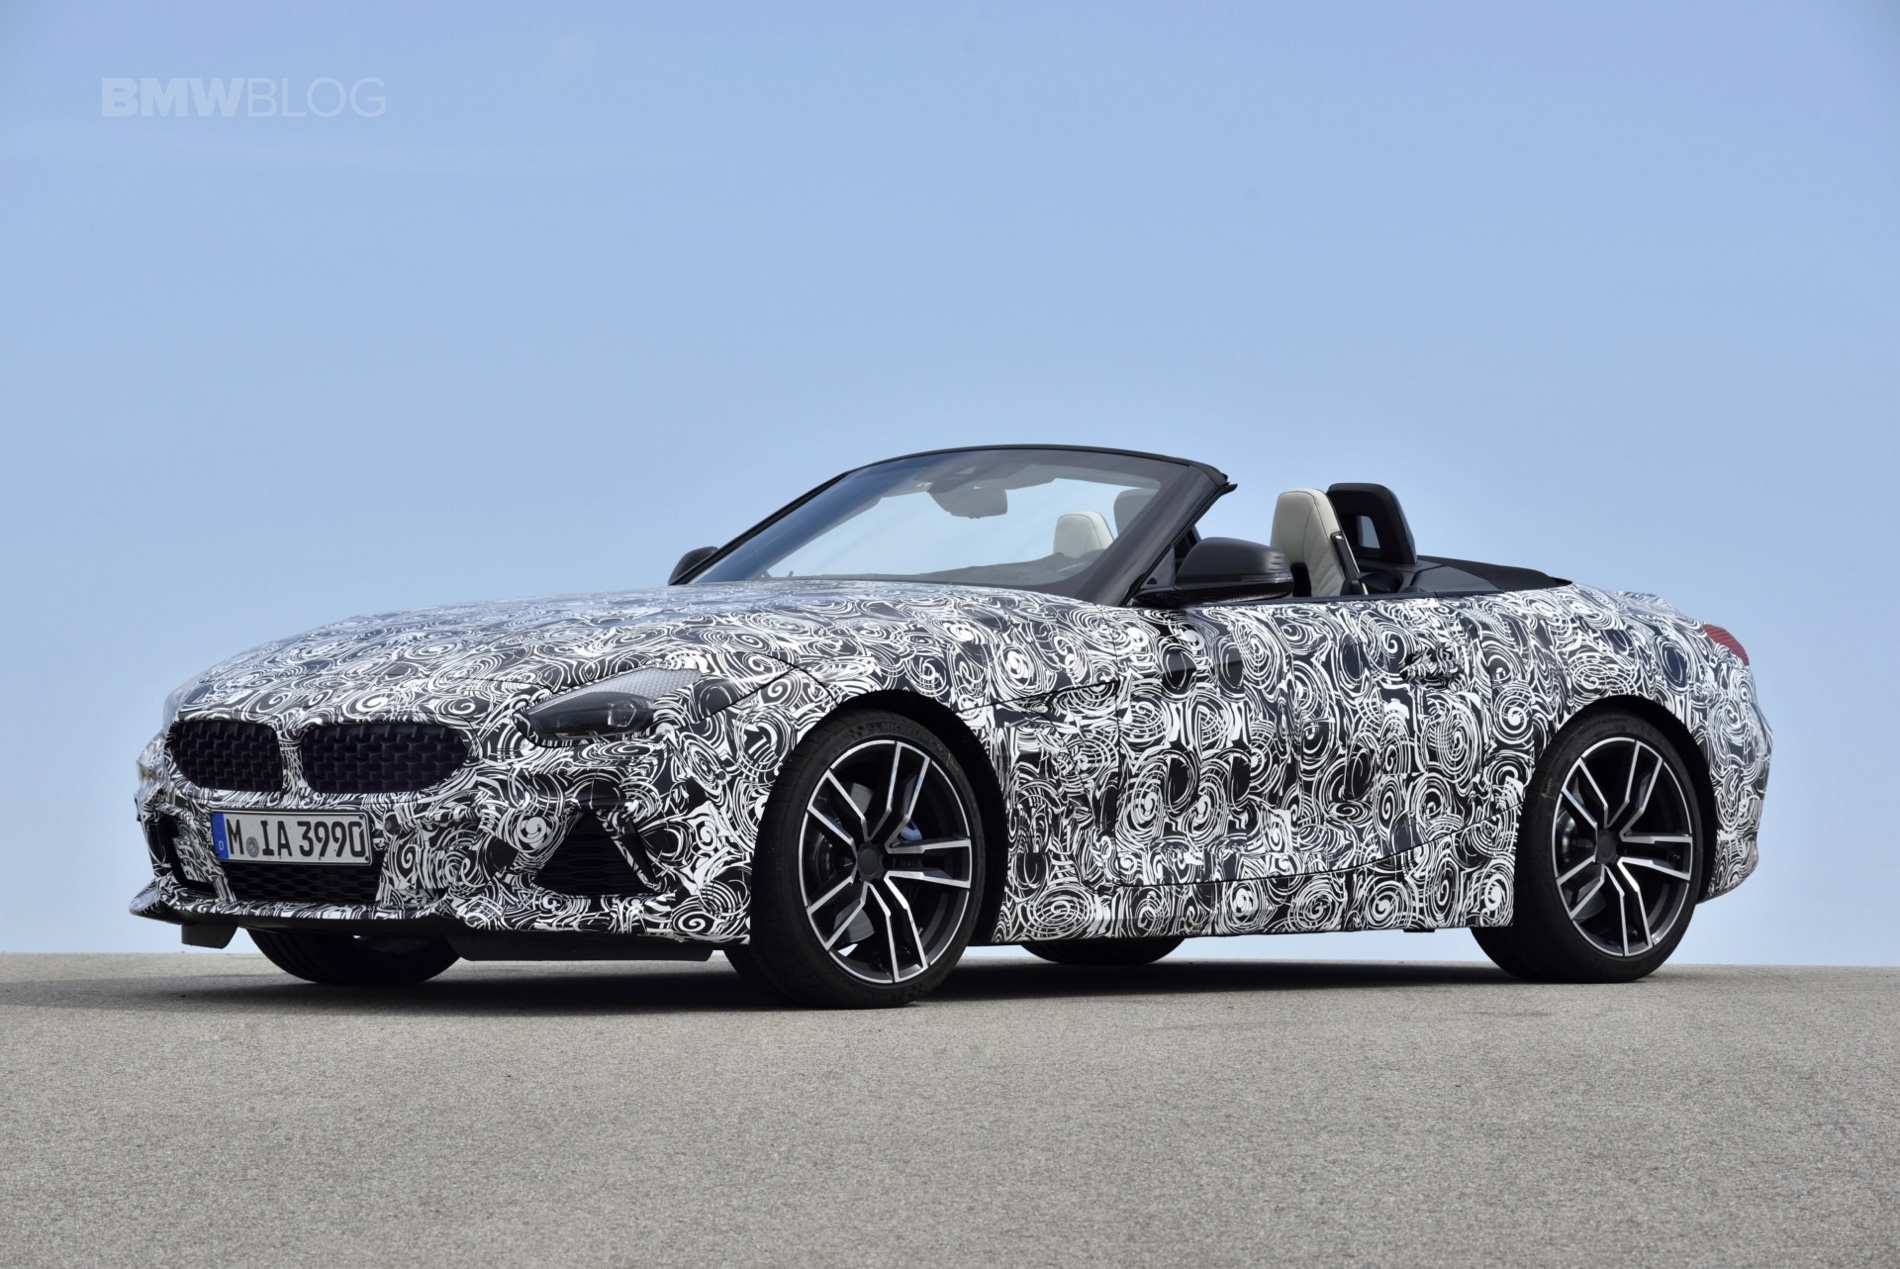 48 All New BMW Z4 Coupe 2020 New Concept with BMW Z4 Coupe 2020